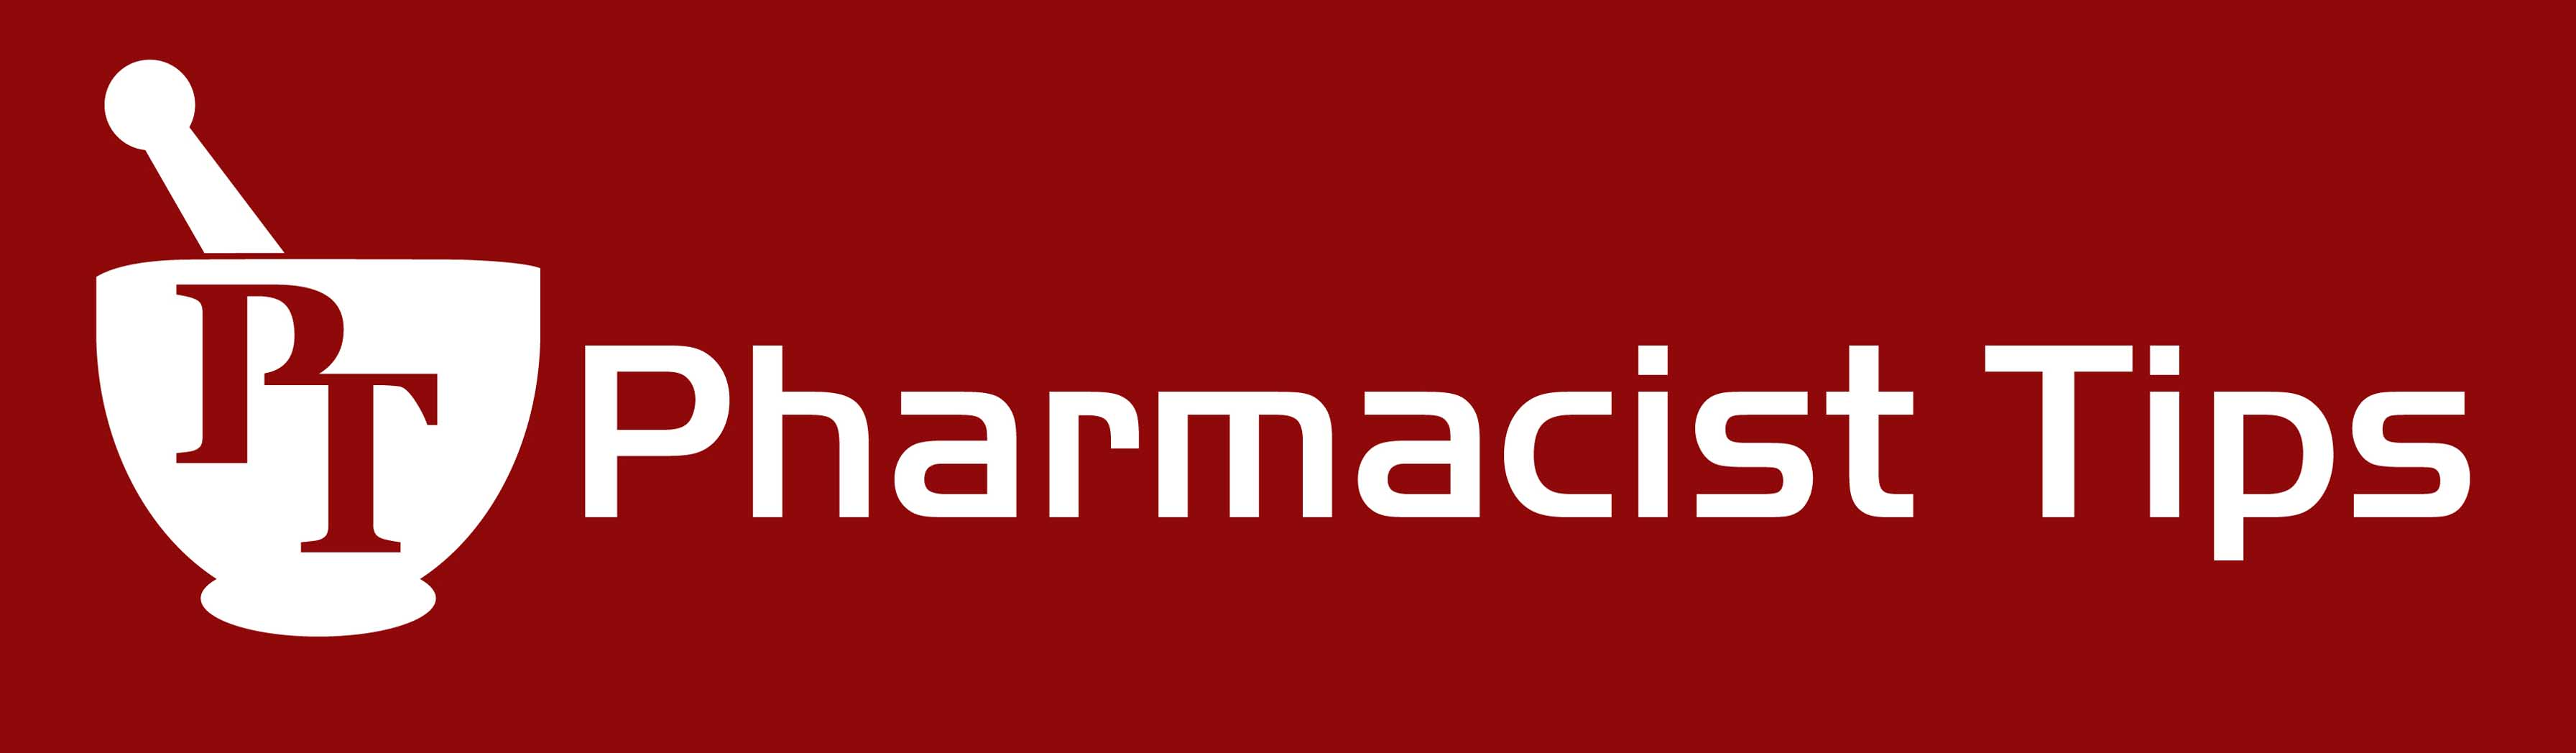 Pharmacist Tips header image